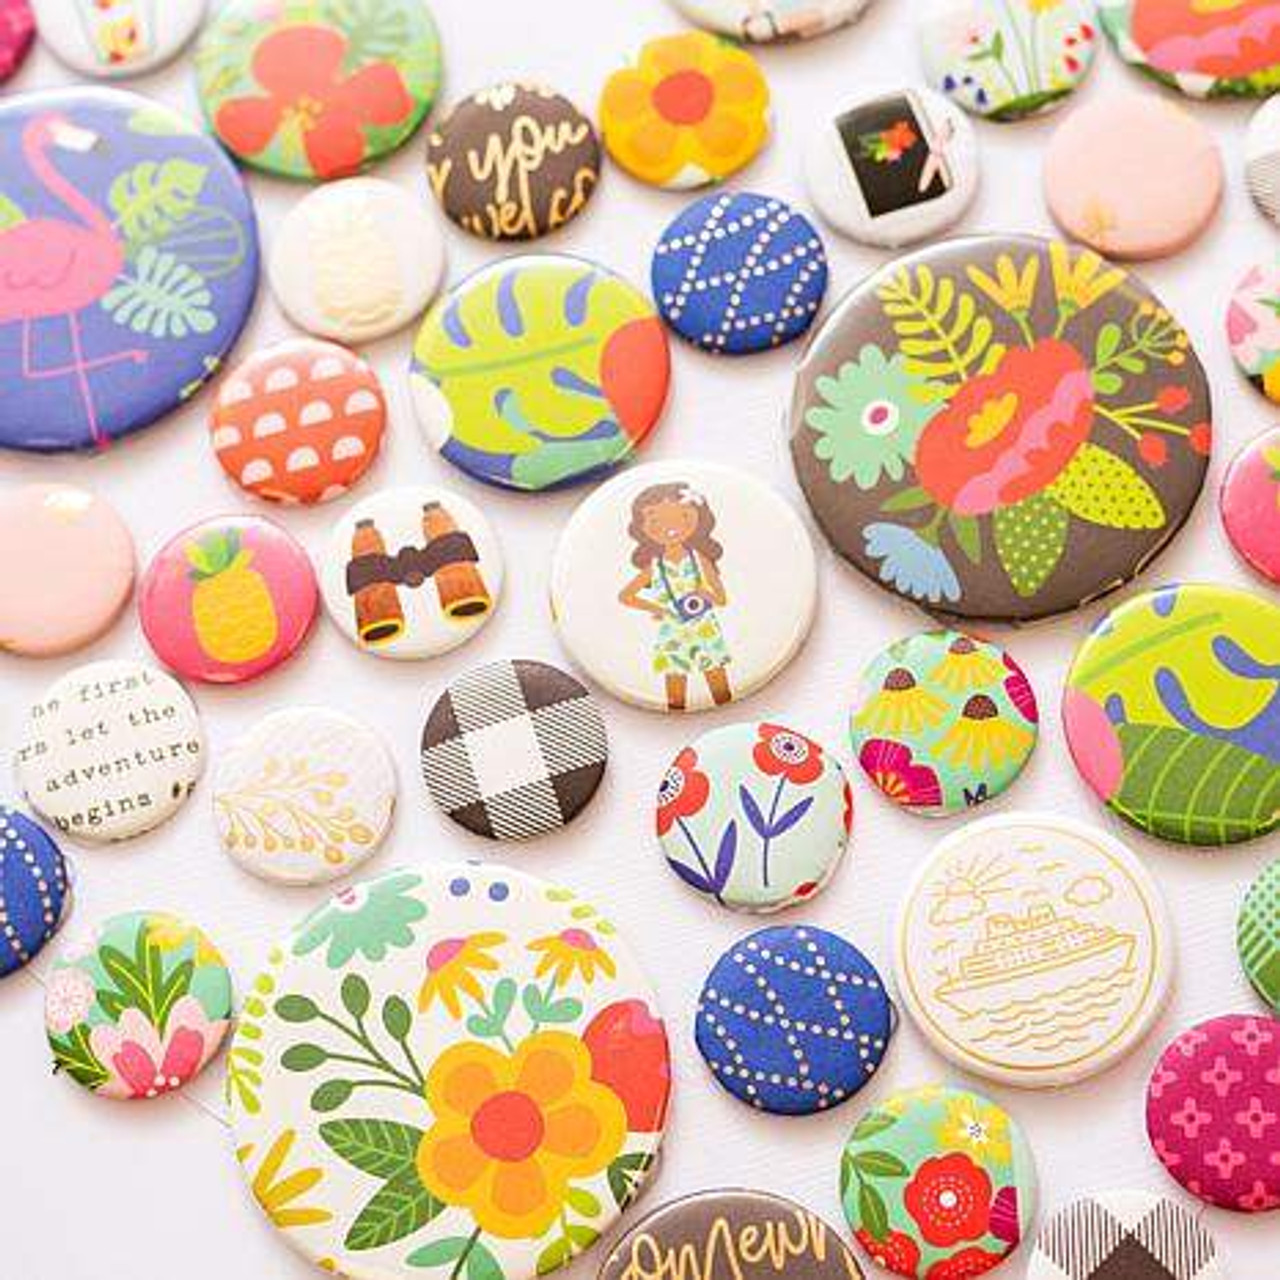 We R Memory Keepers Button Press Kit Colorful Impressions